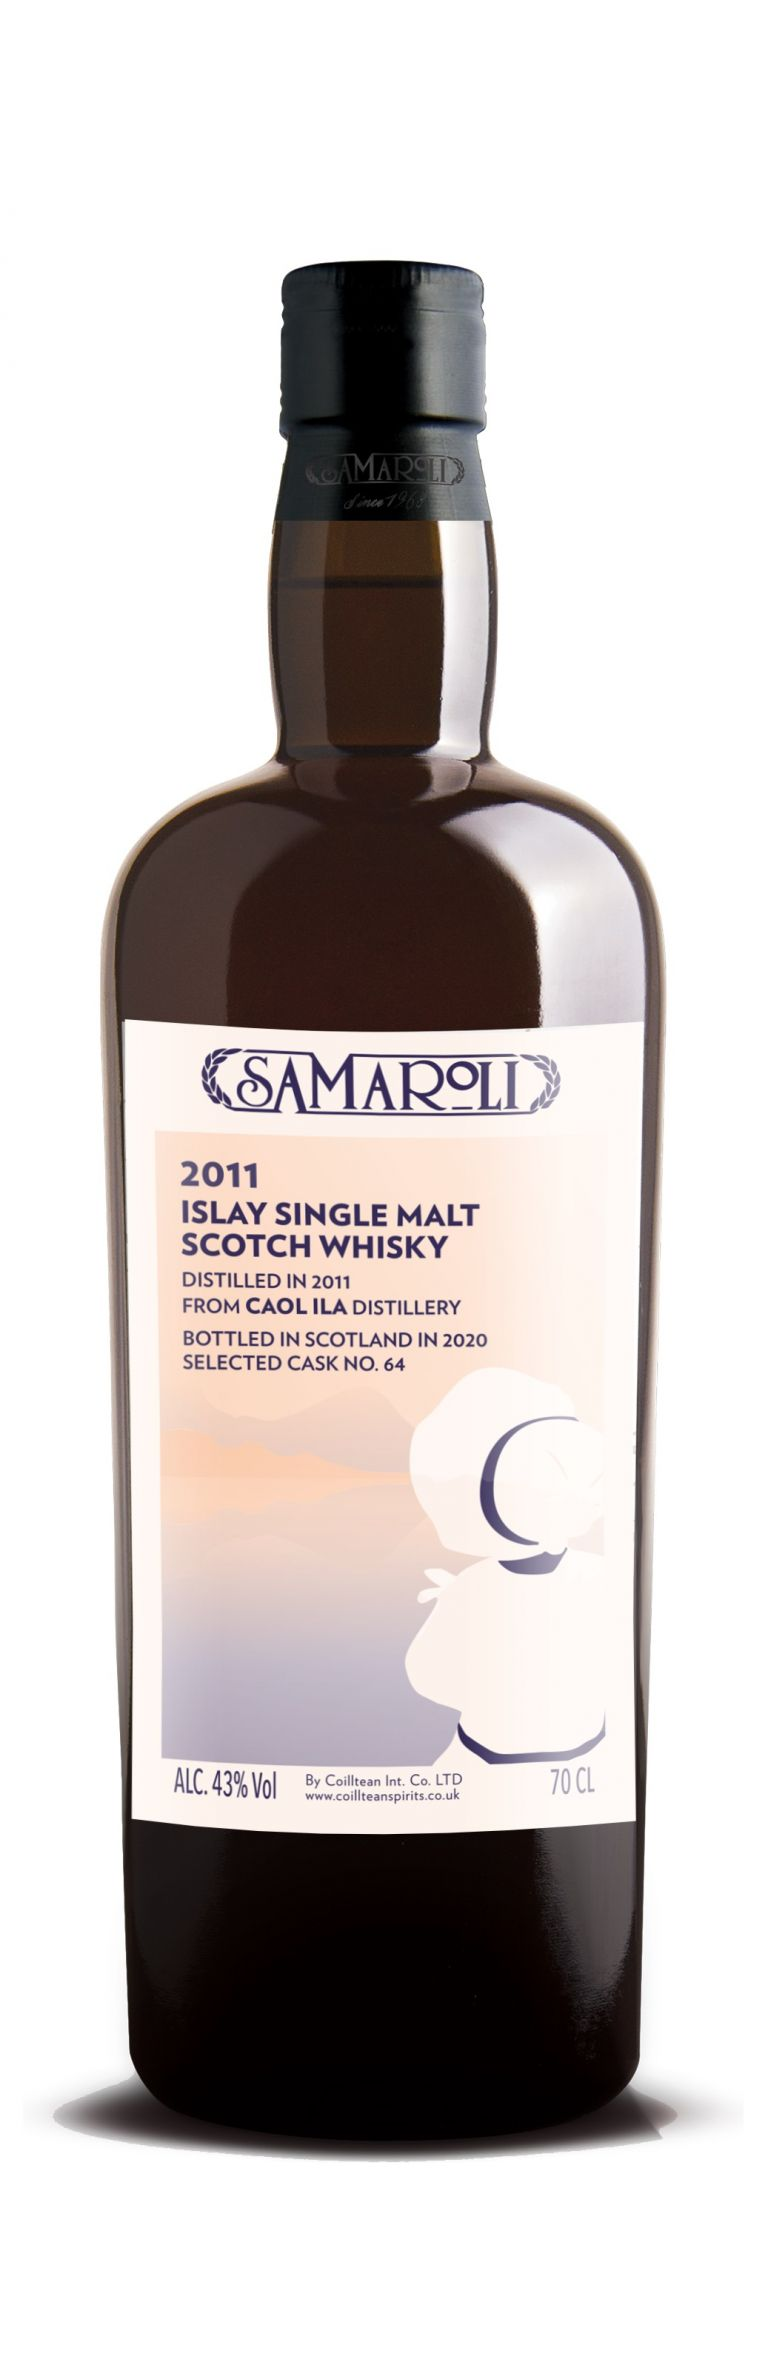 2011 Caol Ila - Islay Single Malt Scotch Whisky - ed. 2020 - 70 cl